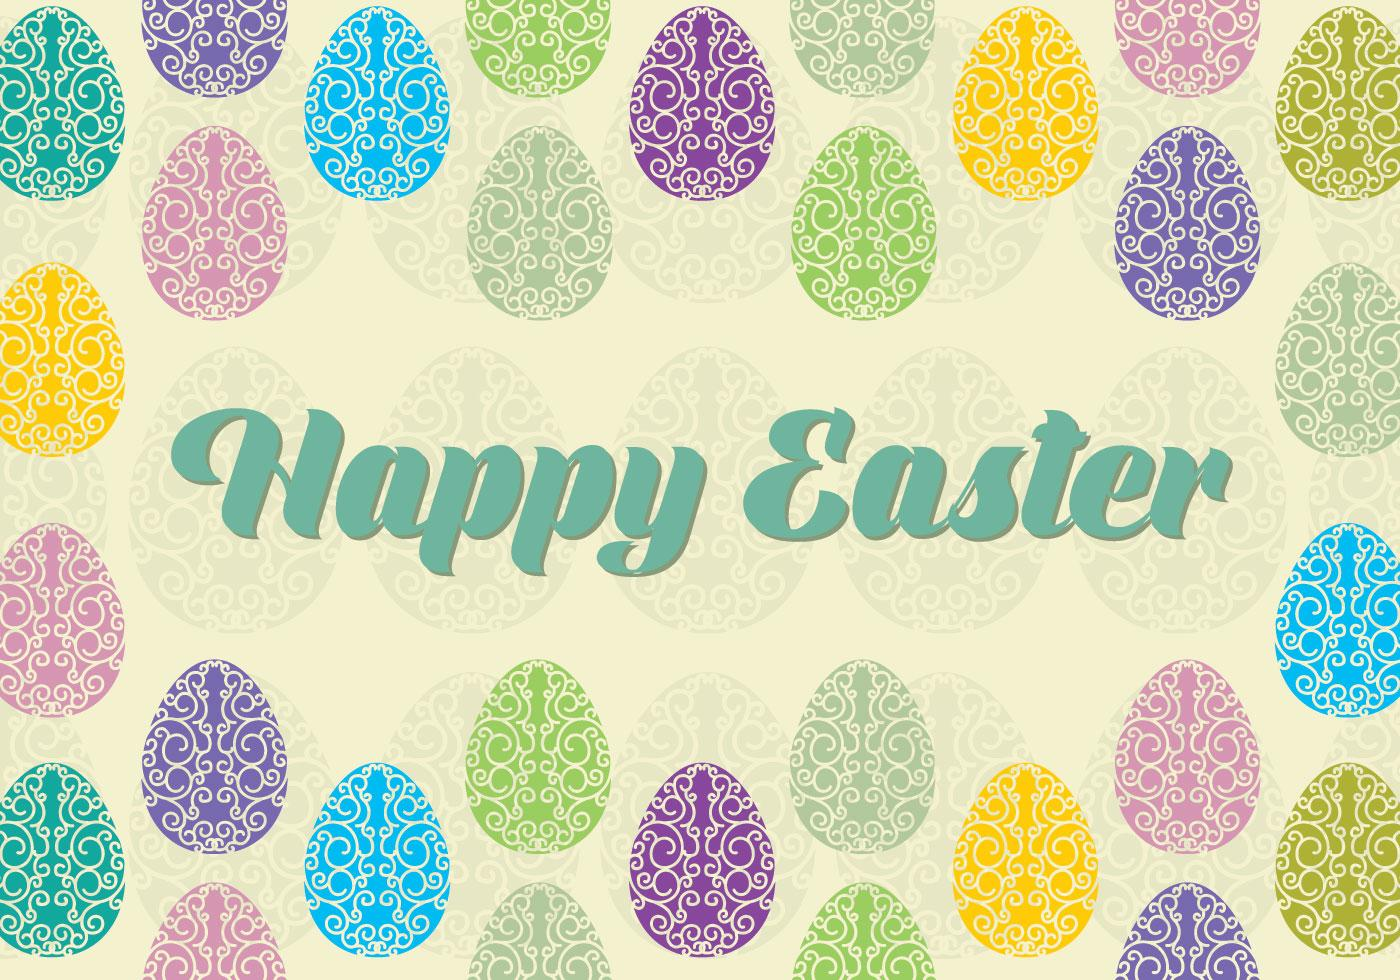 220 Best Easter Graphics in 2020: Free & Premium - happy easter background vector